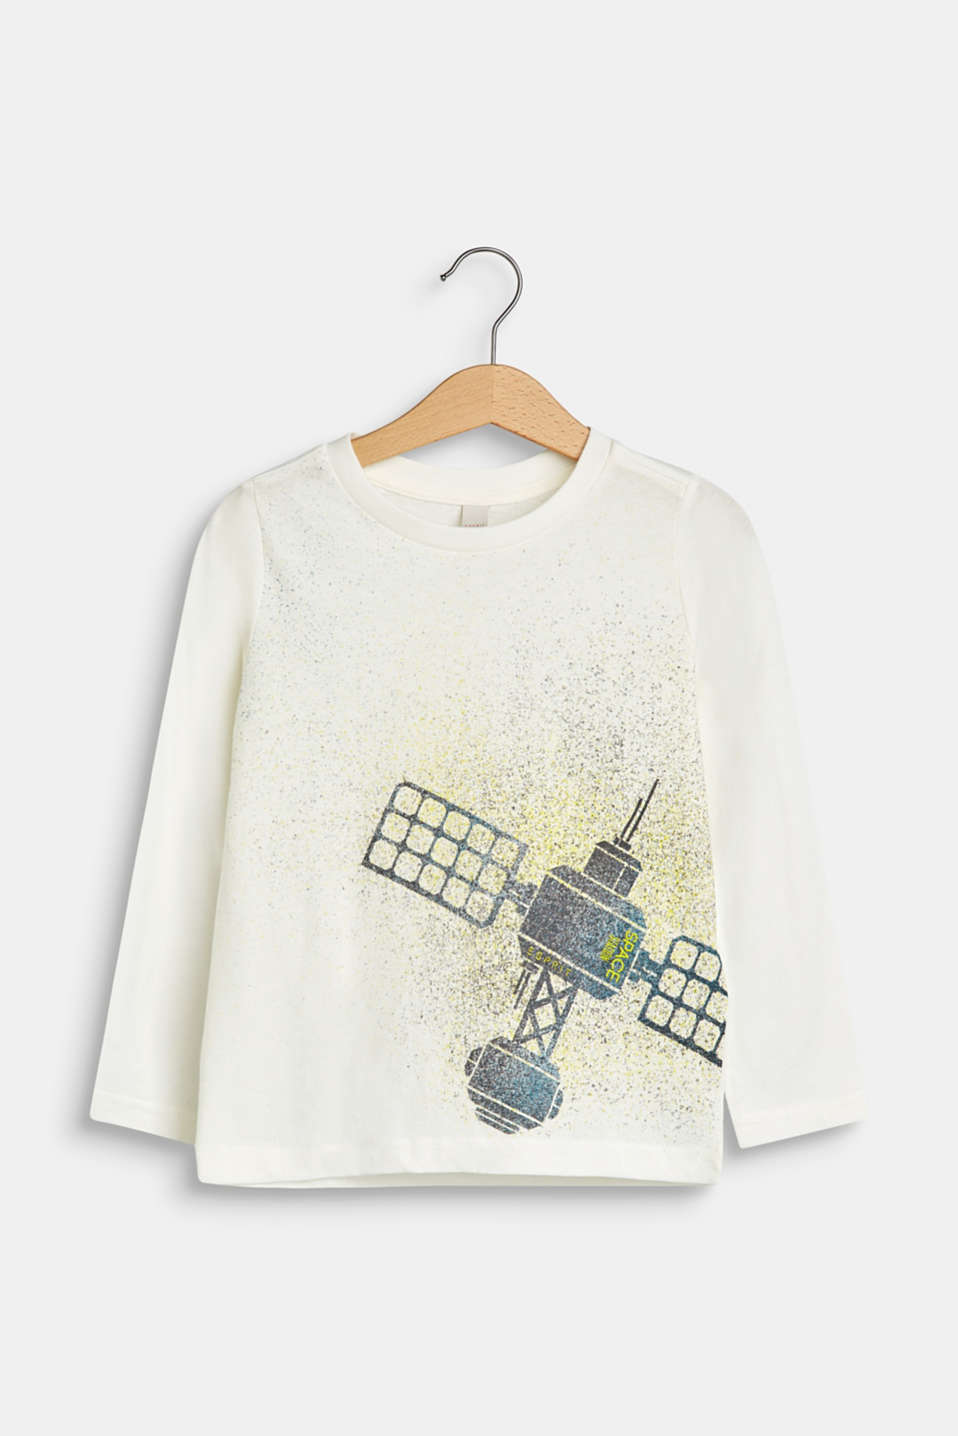 Esprit - Long sleeve top with a space motif